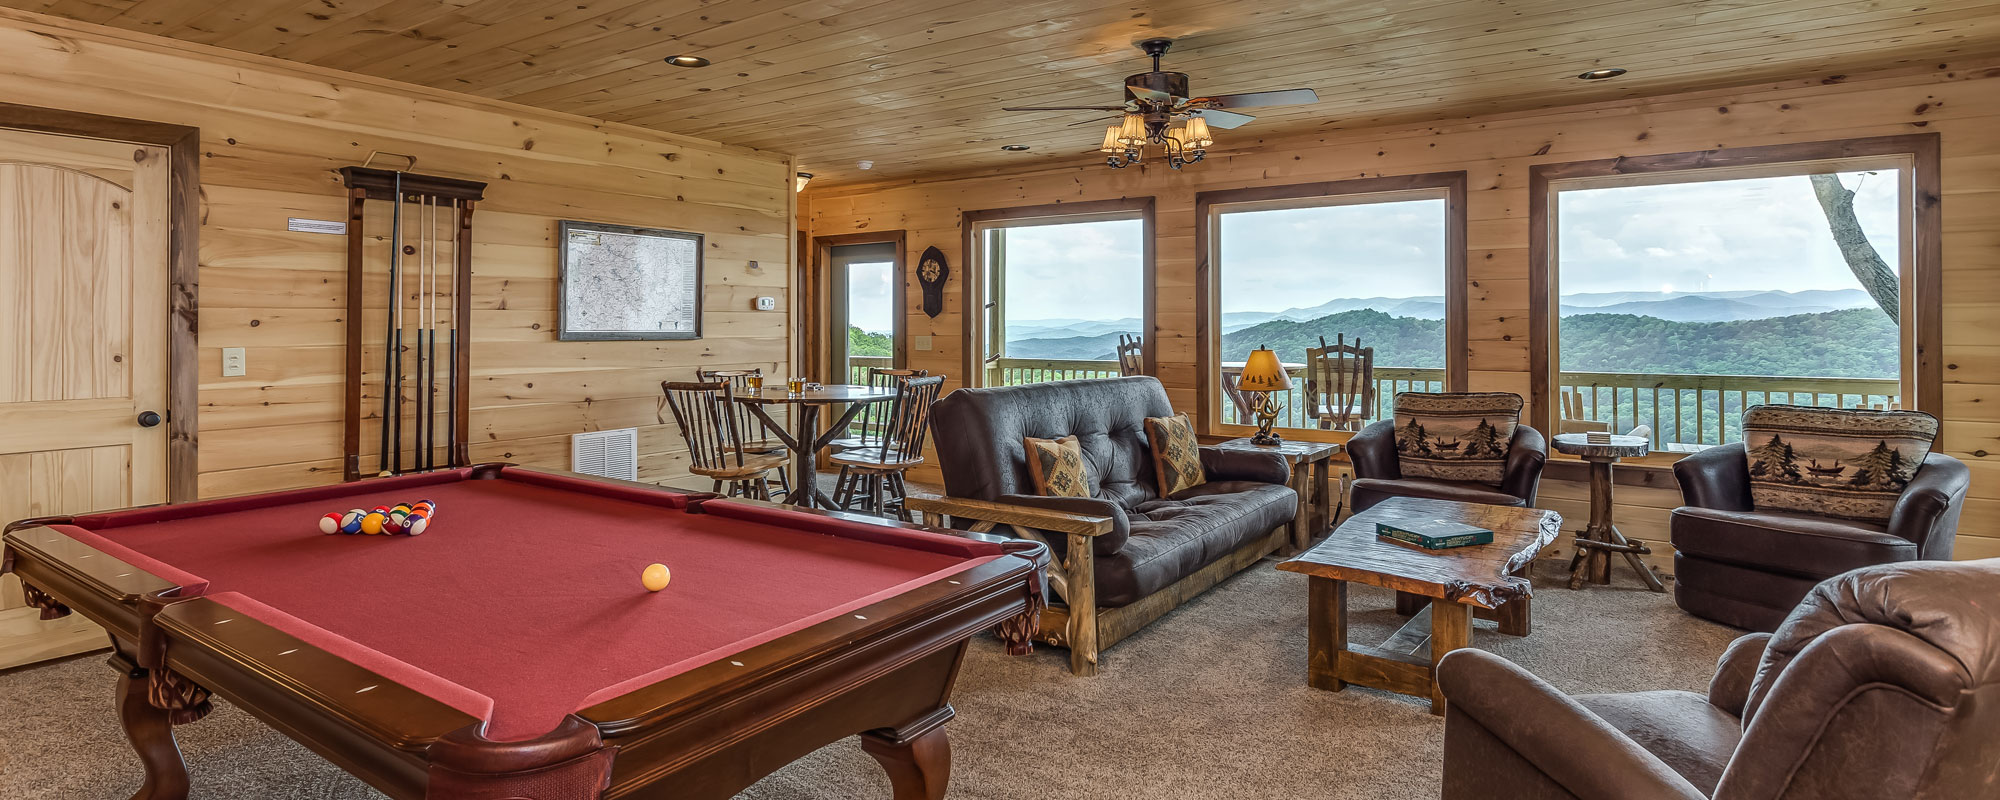 Luxury Cabin Rental Game room